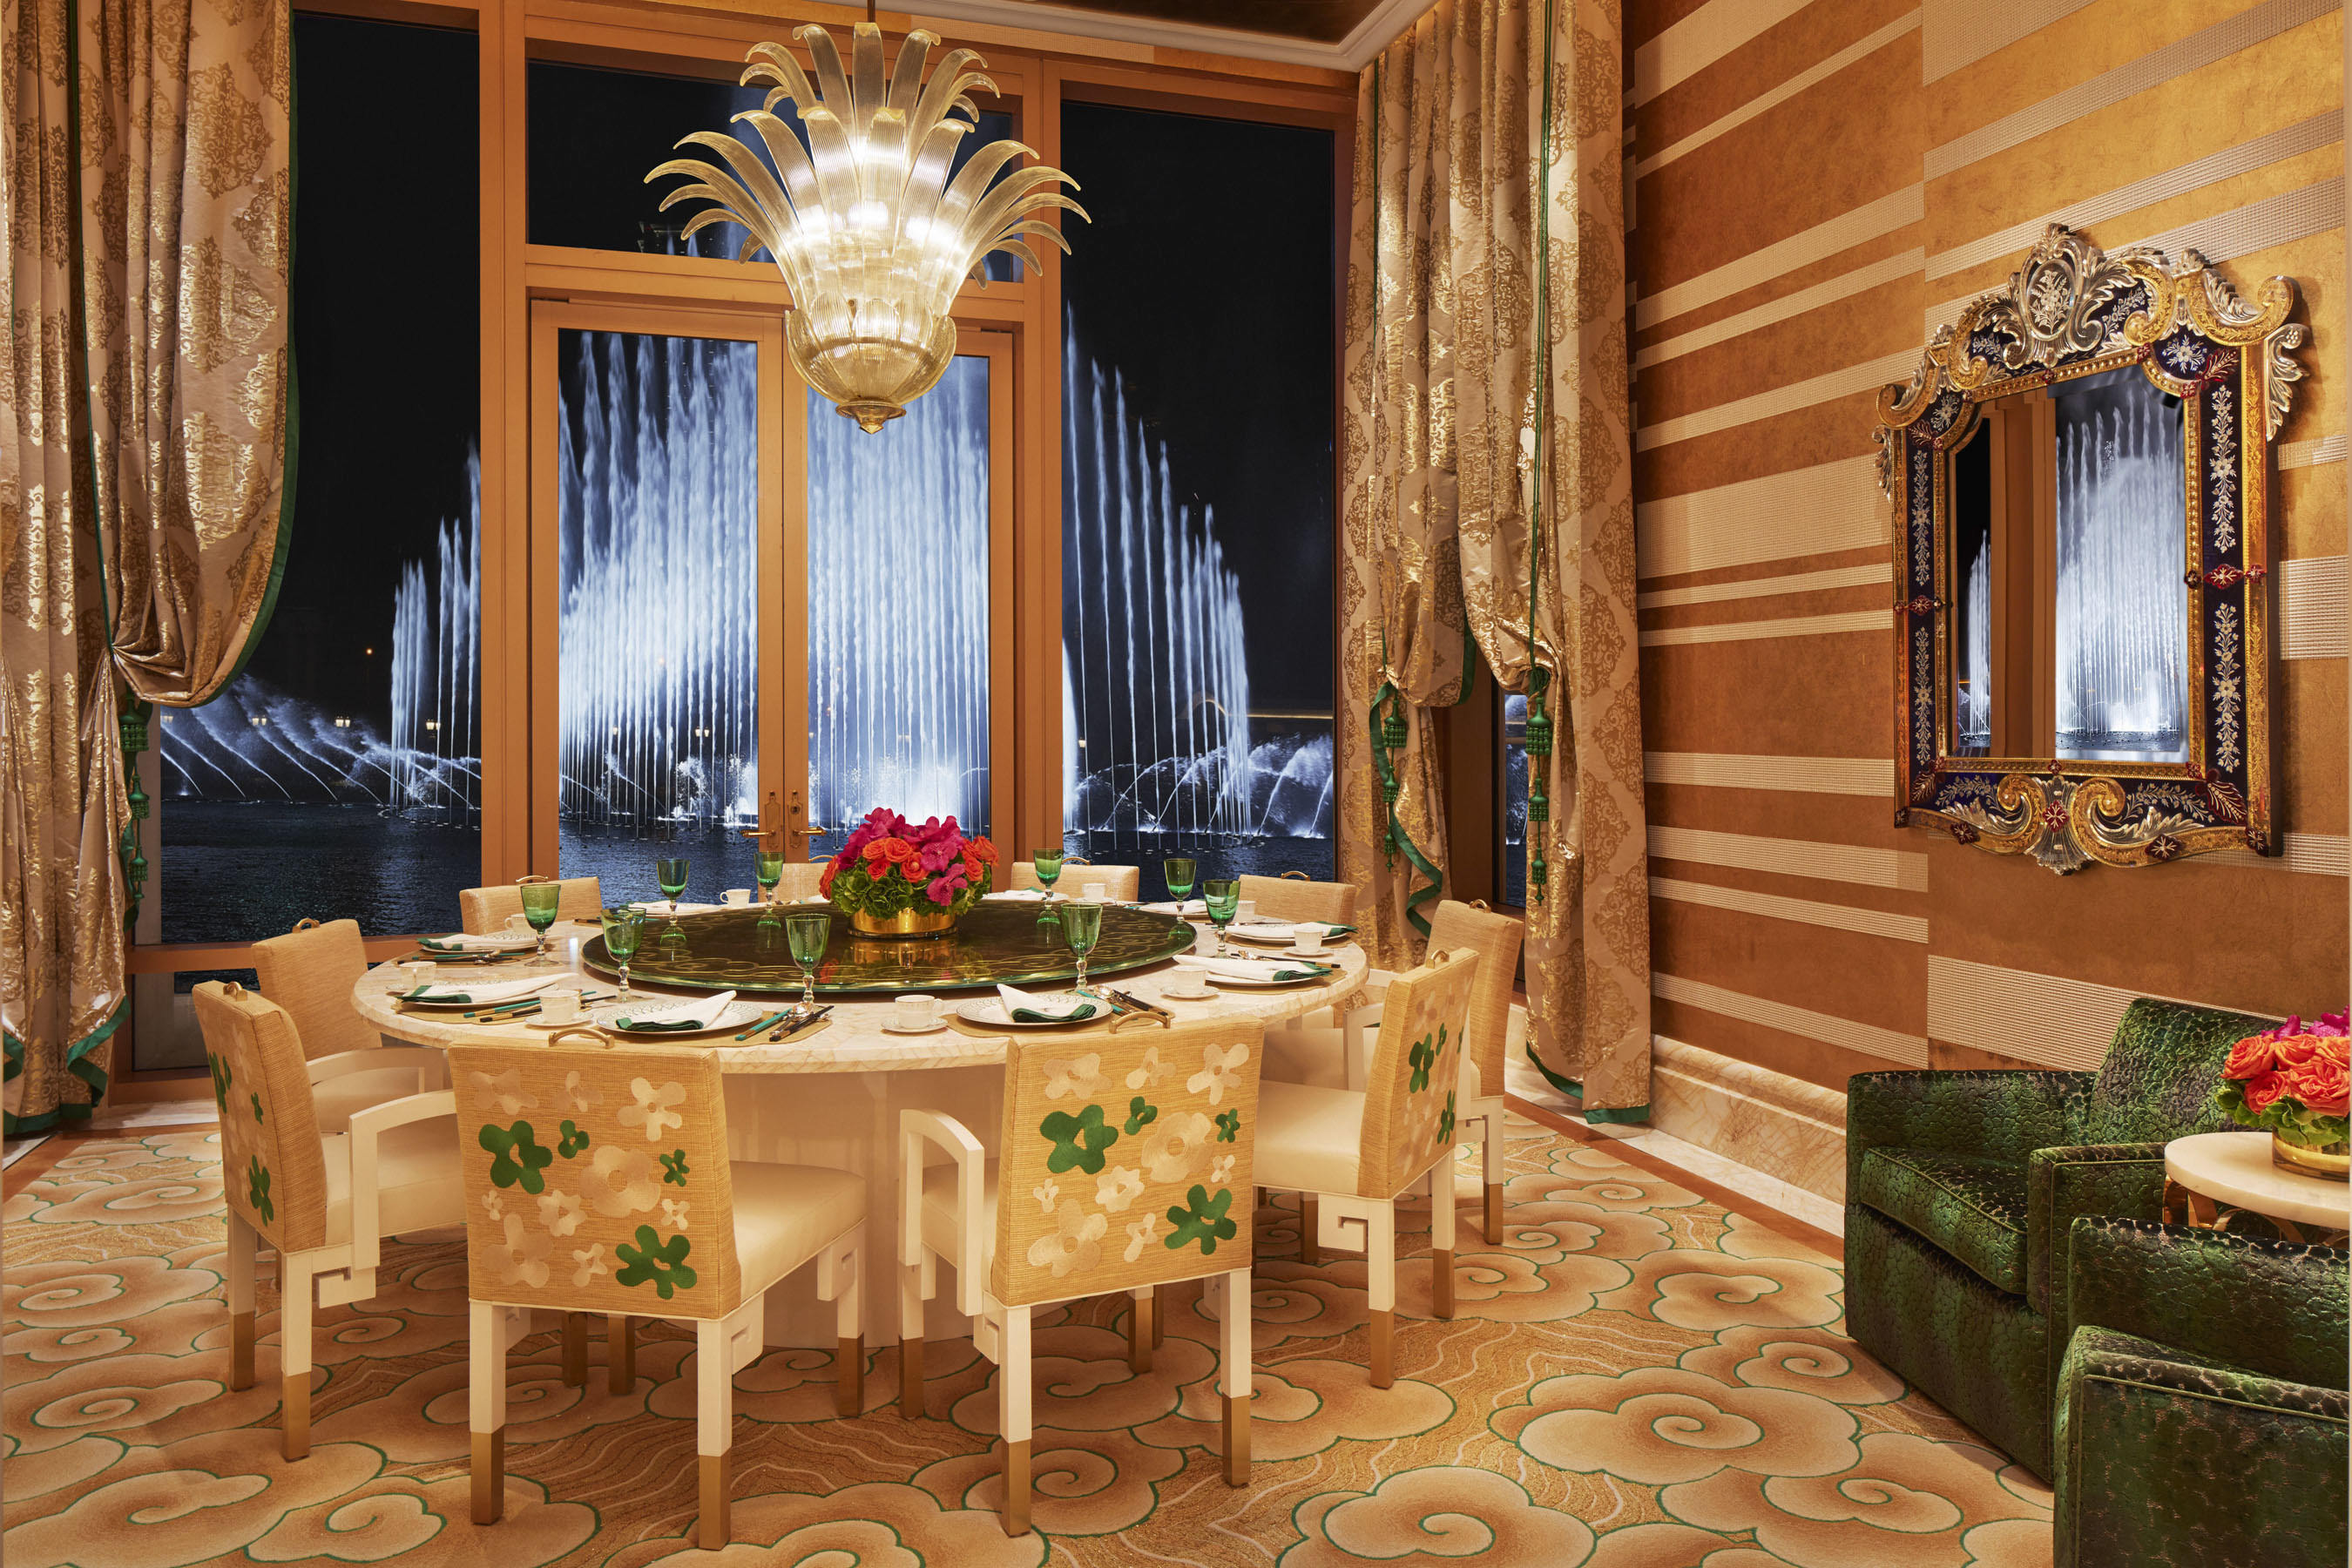 Guests can enjoy privacy at the restaurant's uniquely designed private rooms, while enjoying the ultimate spectacle: the magnificent Performance Lake.